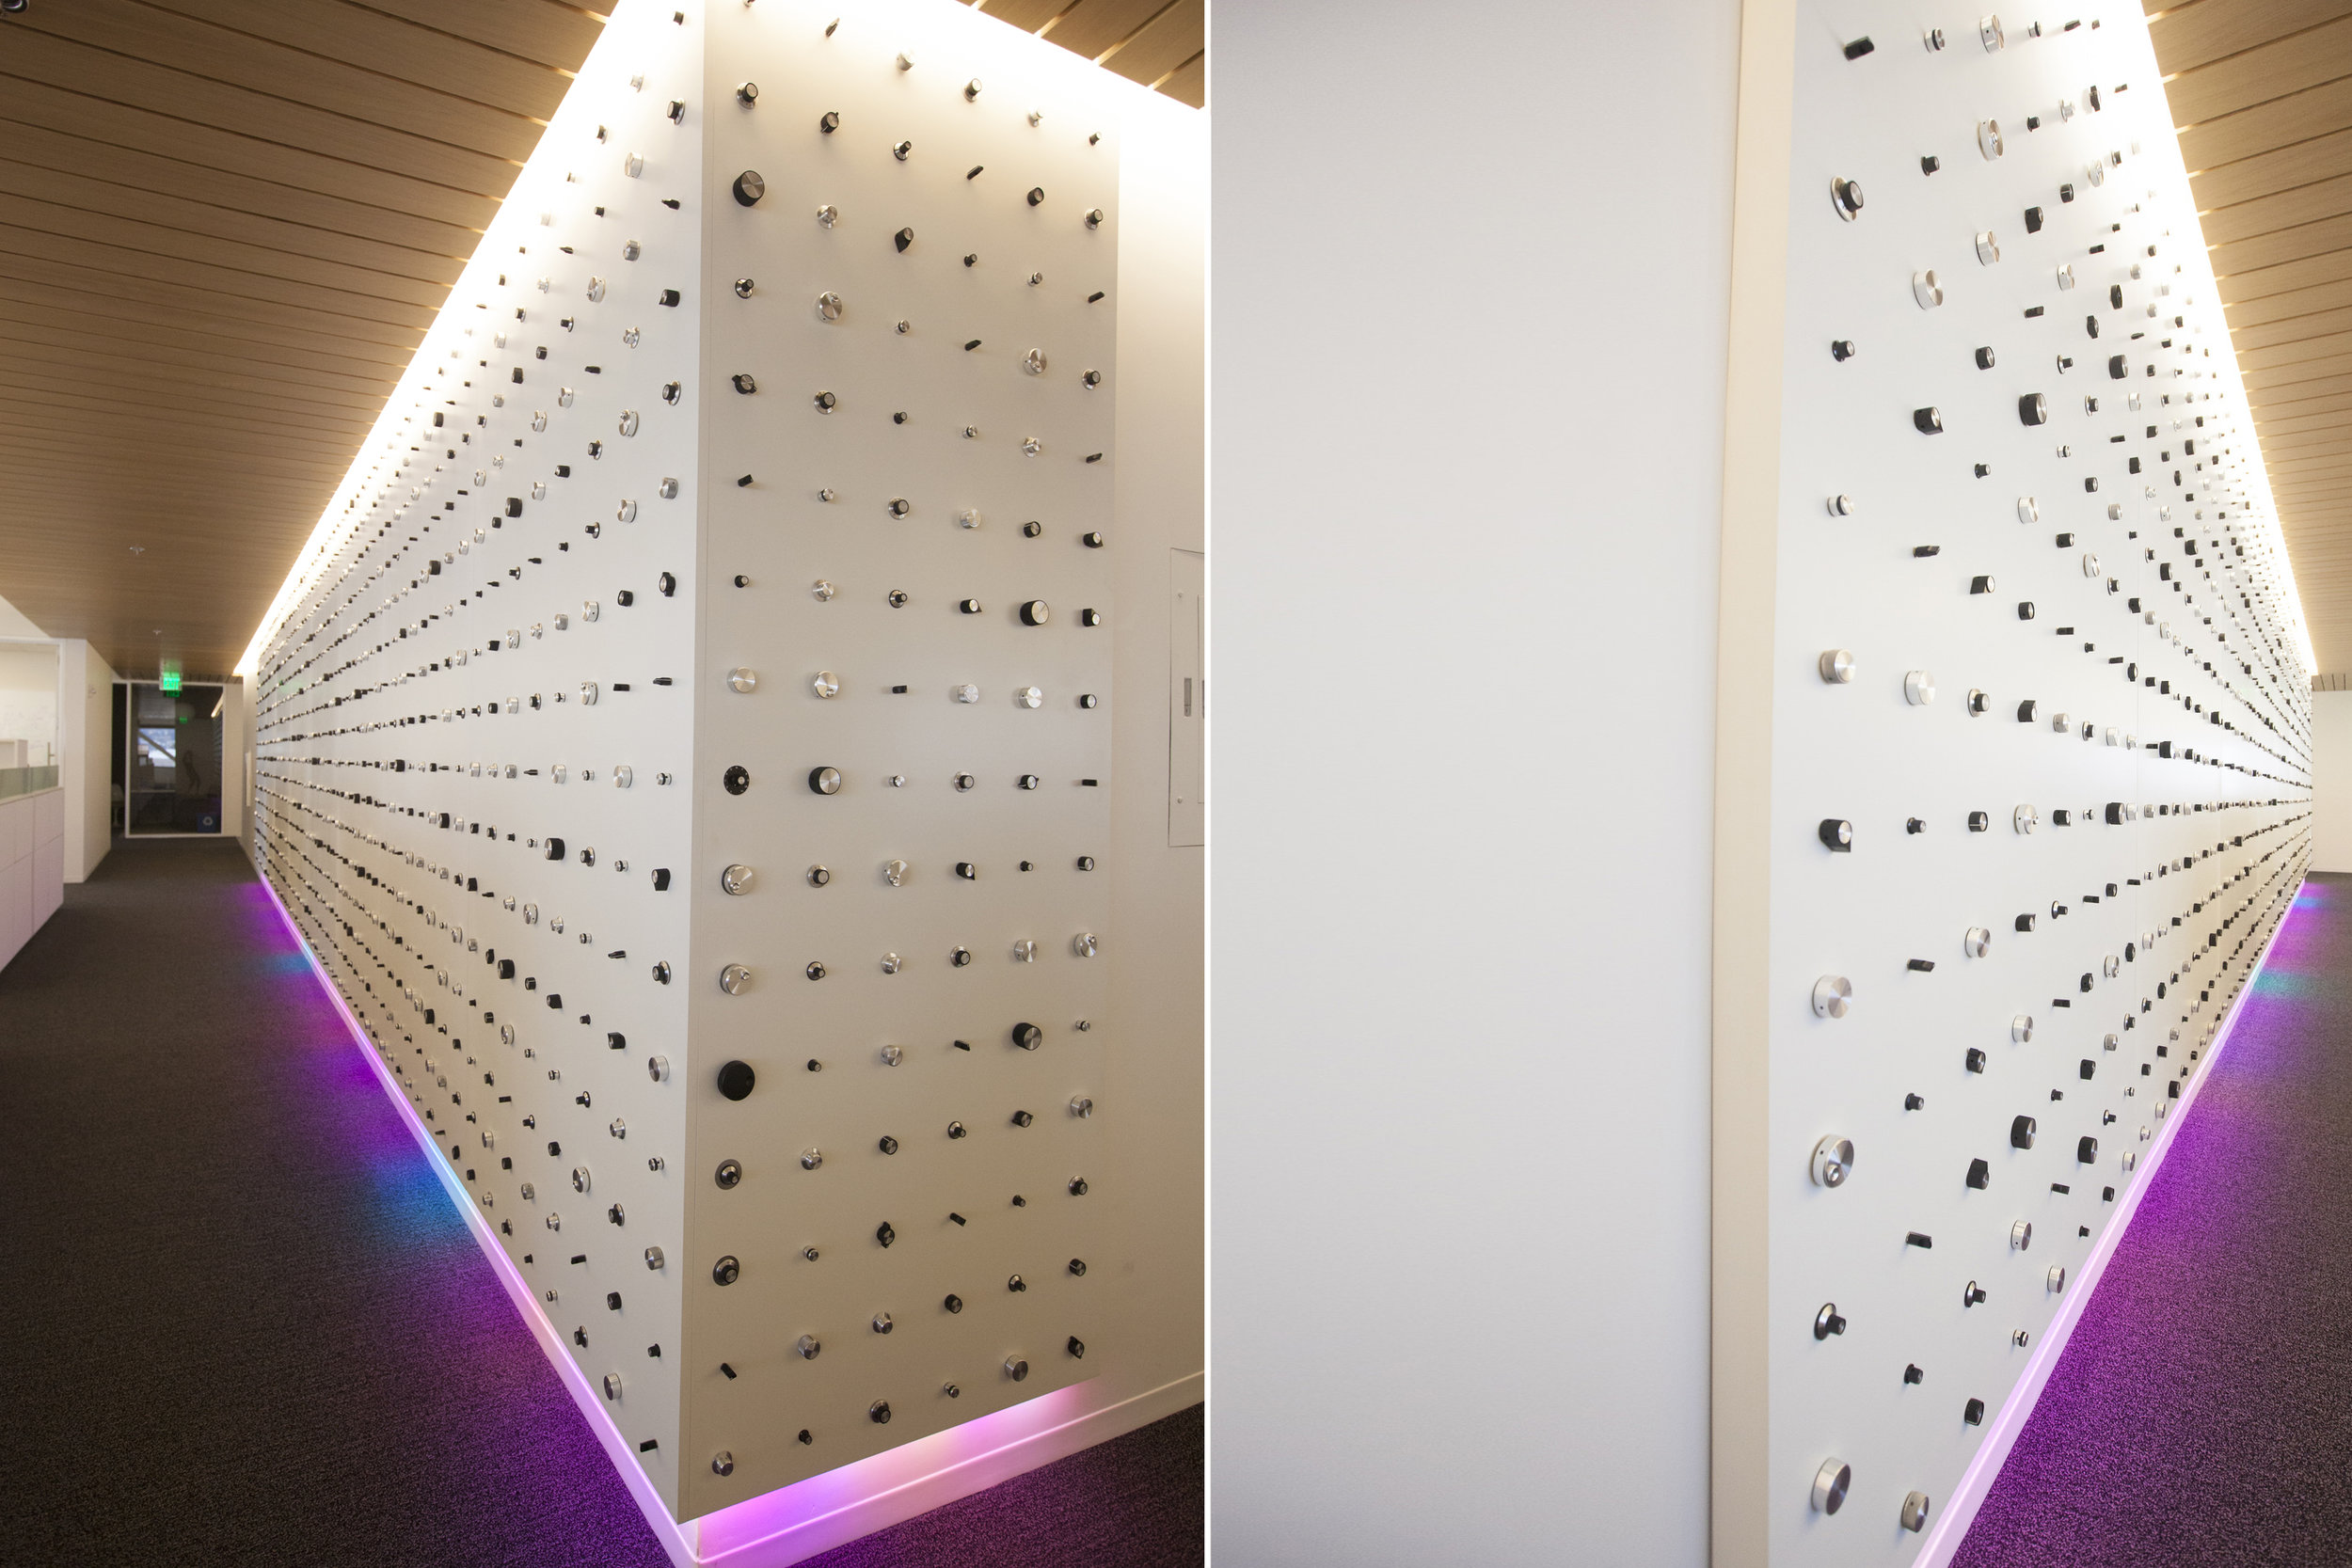 Rounding the corner, the LEDs on the bottom are controlled by select knobs that control multiple functions. The LEDs control is wirelessly accessible to be hacked and modified by the engineers that work on this floor of the Dolby headquarters.